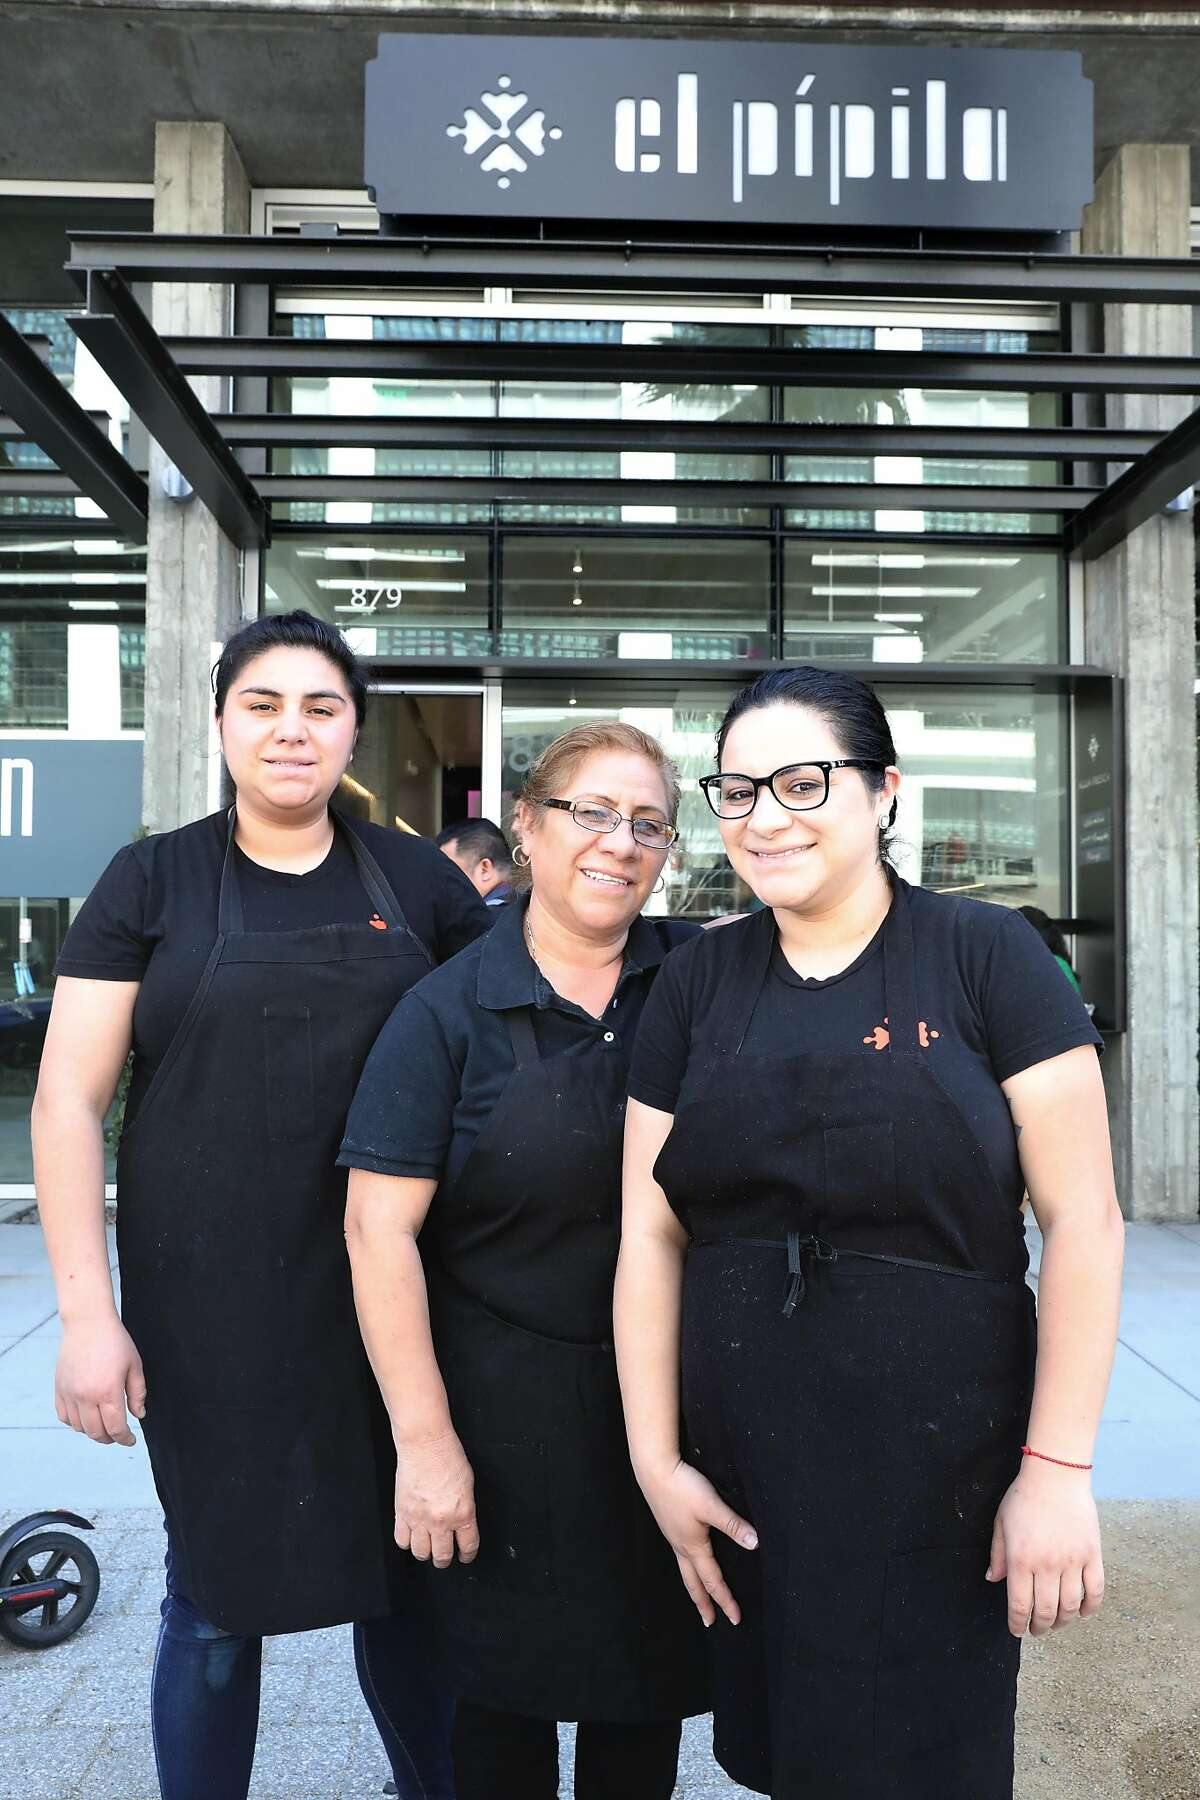 Guadalupe Guerrero (middle) with her daughters Alejandra Juarez (left) and Brenda Juarez (right) in front of El Pipila, a Guanajuato restaurant seen on Tuesday, April 23, 2019, in San Francisco, Calif.